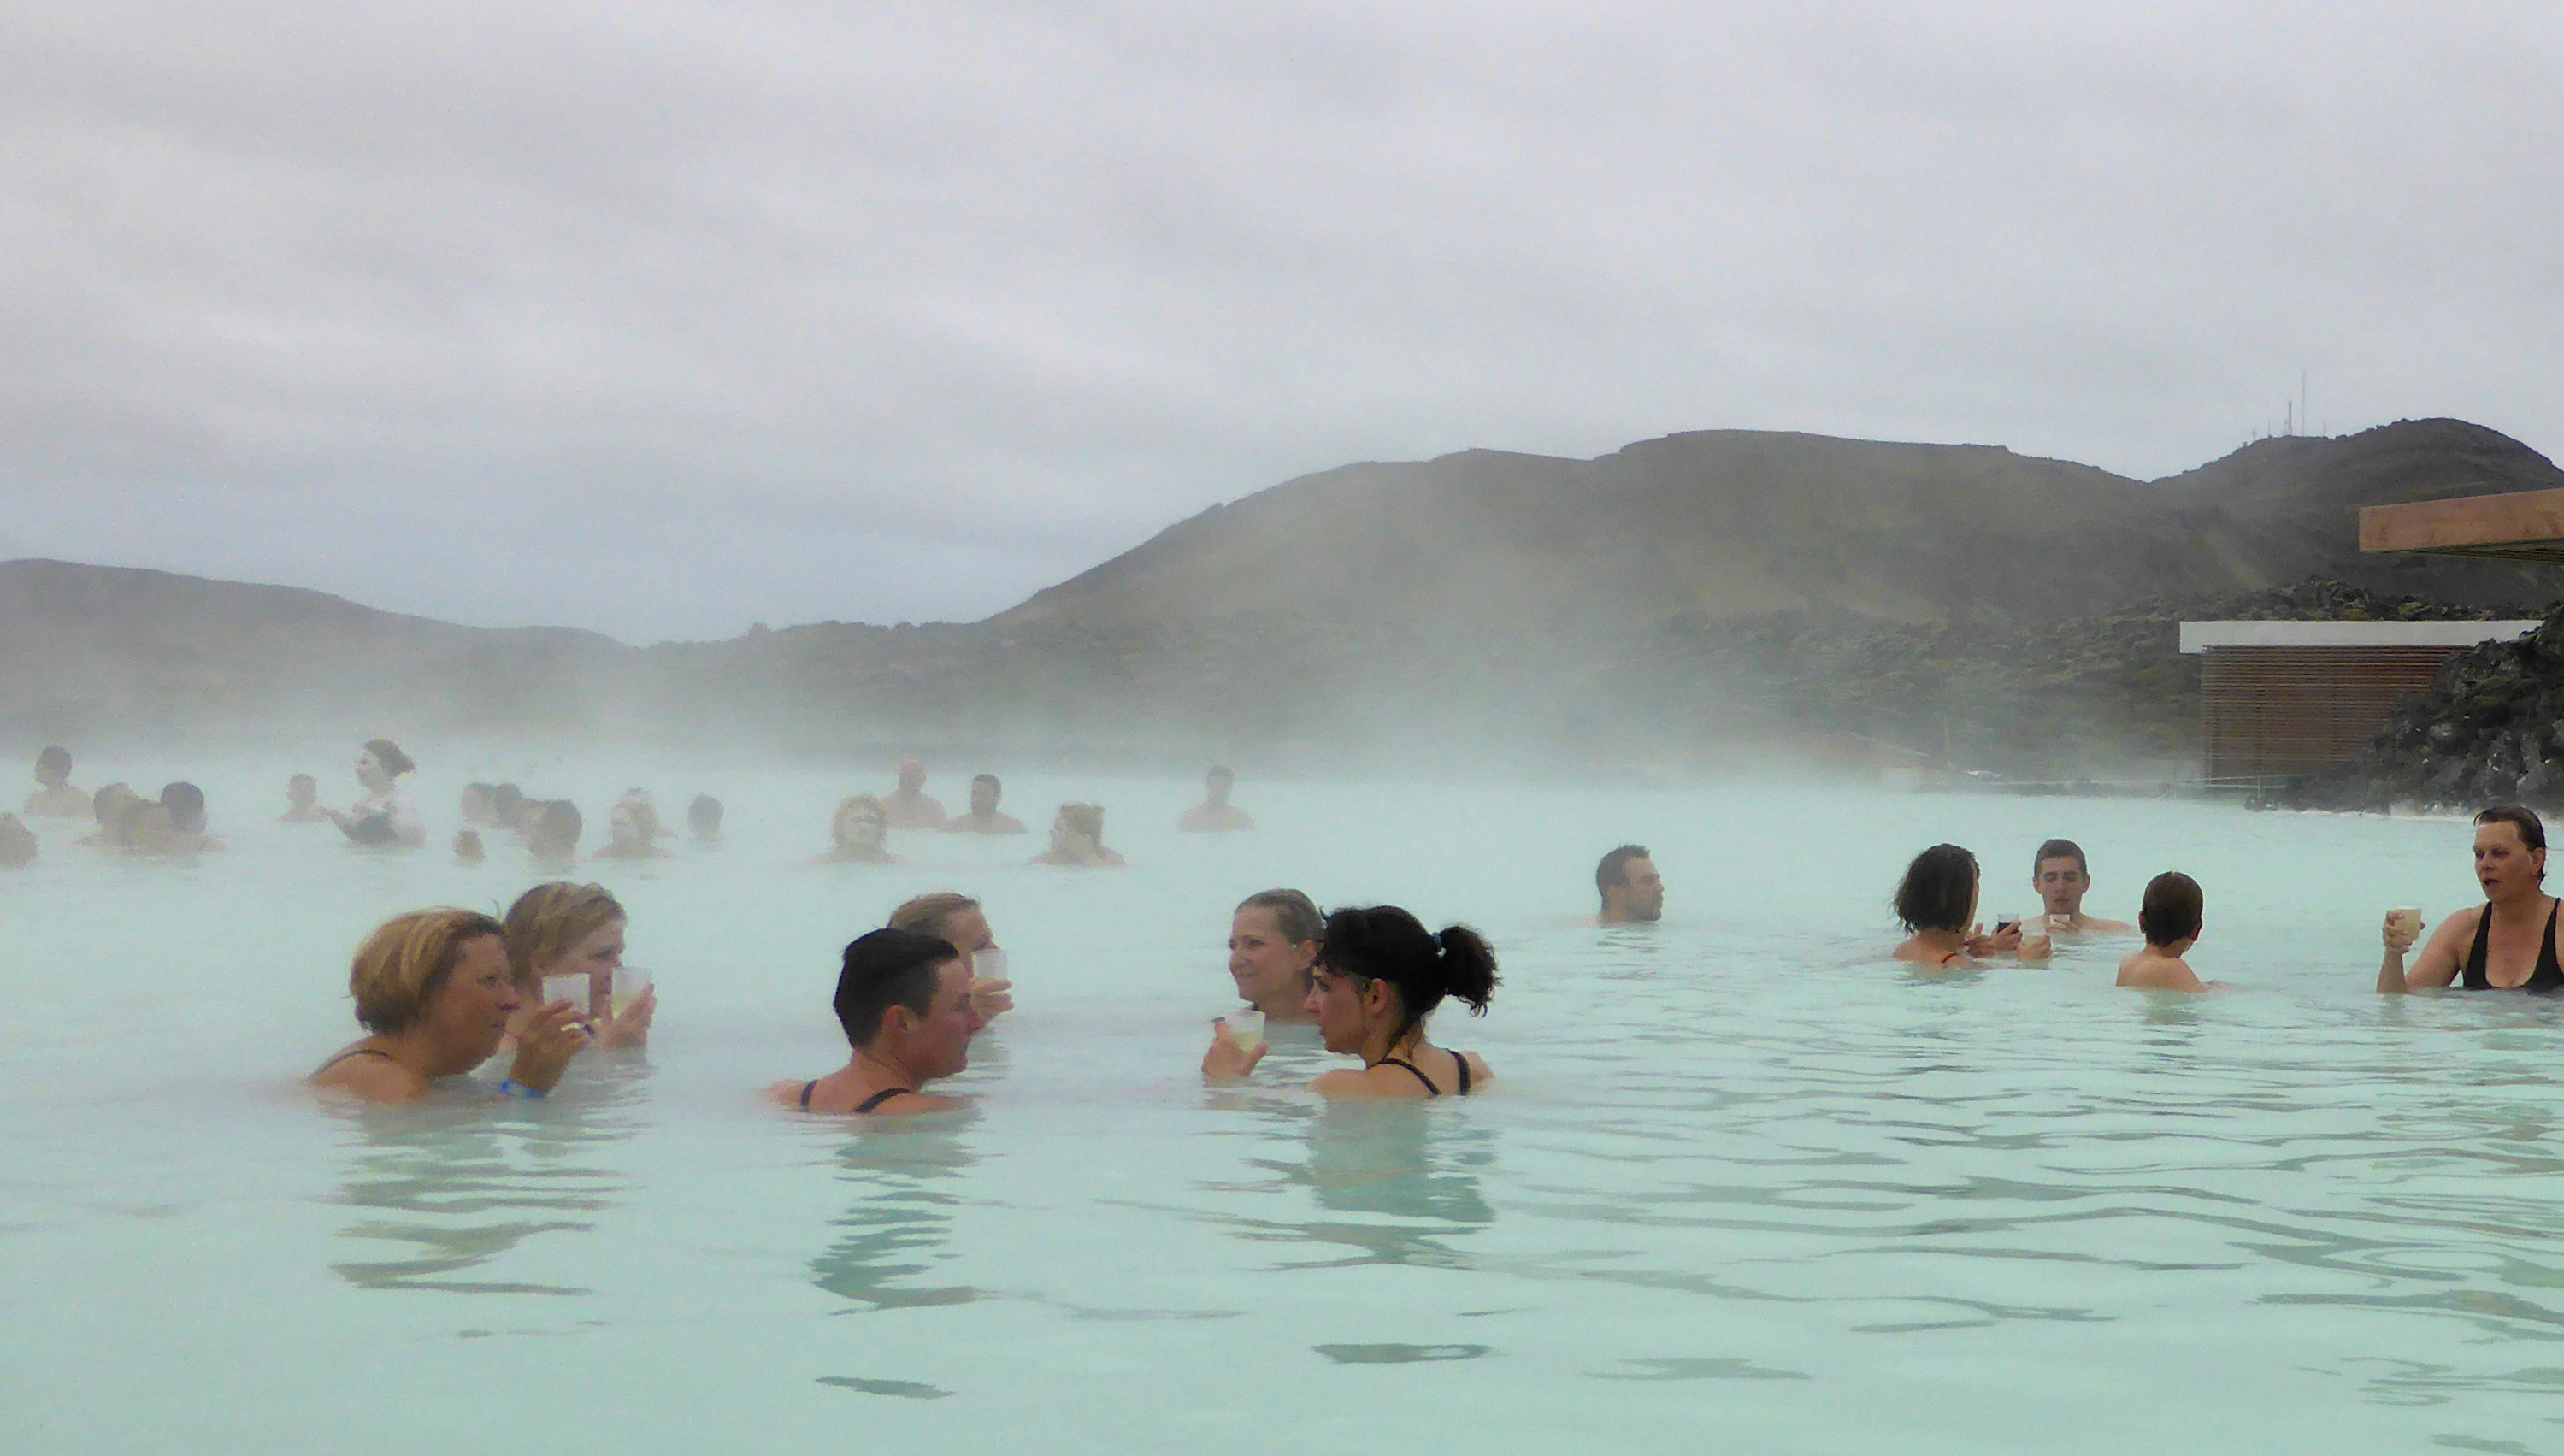 Visitors enjoy a drink in the Blue Lagoon geothermal spa in Grindavik, Iceland, May 25, 2016.